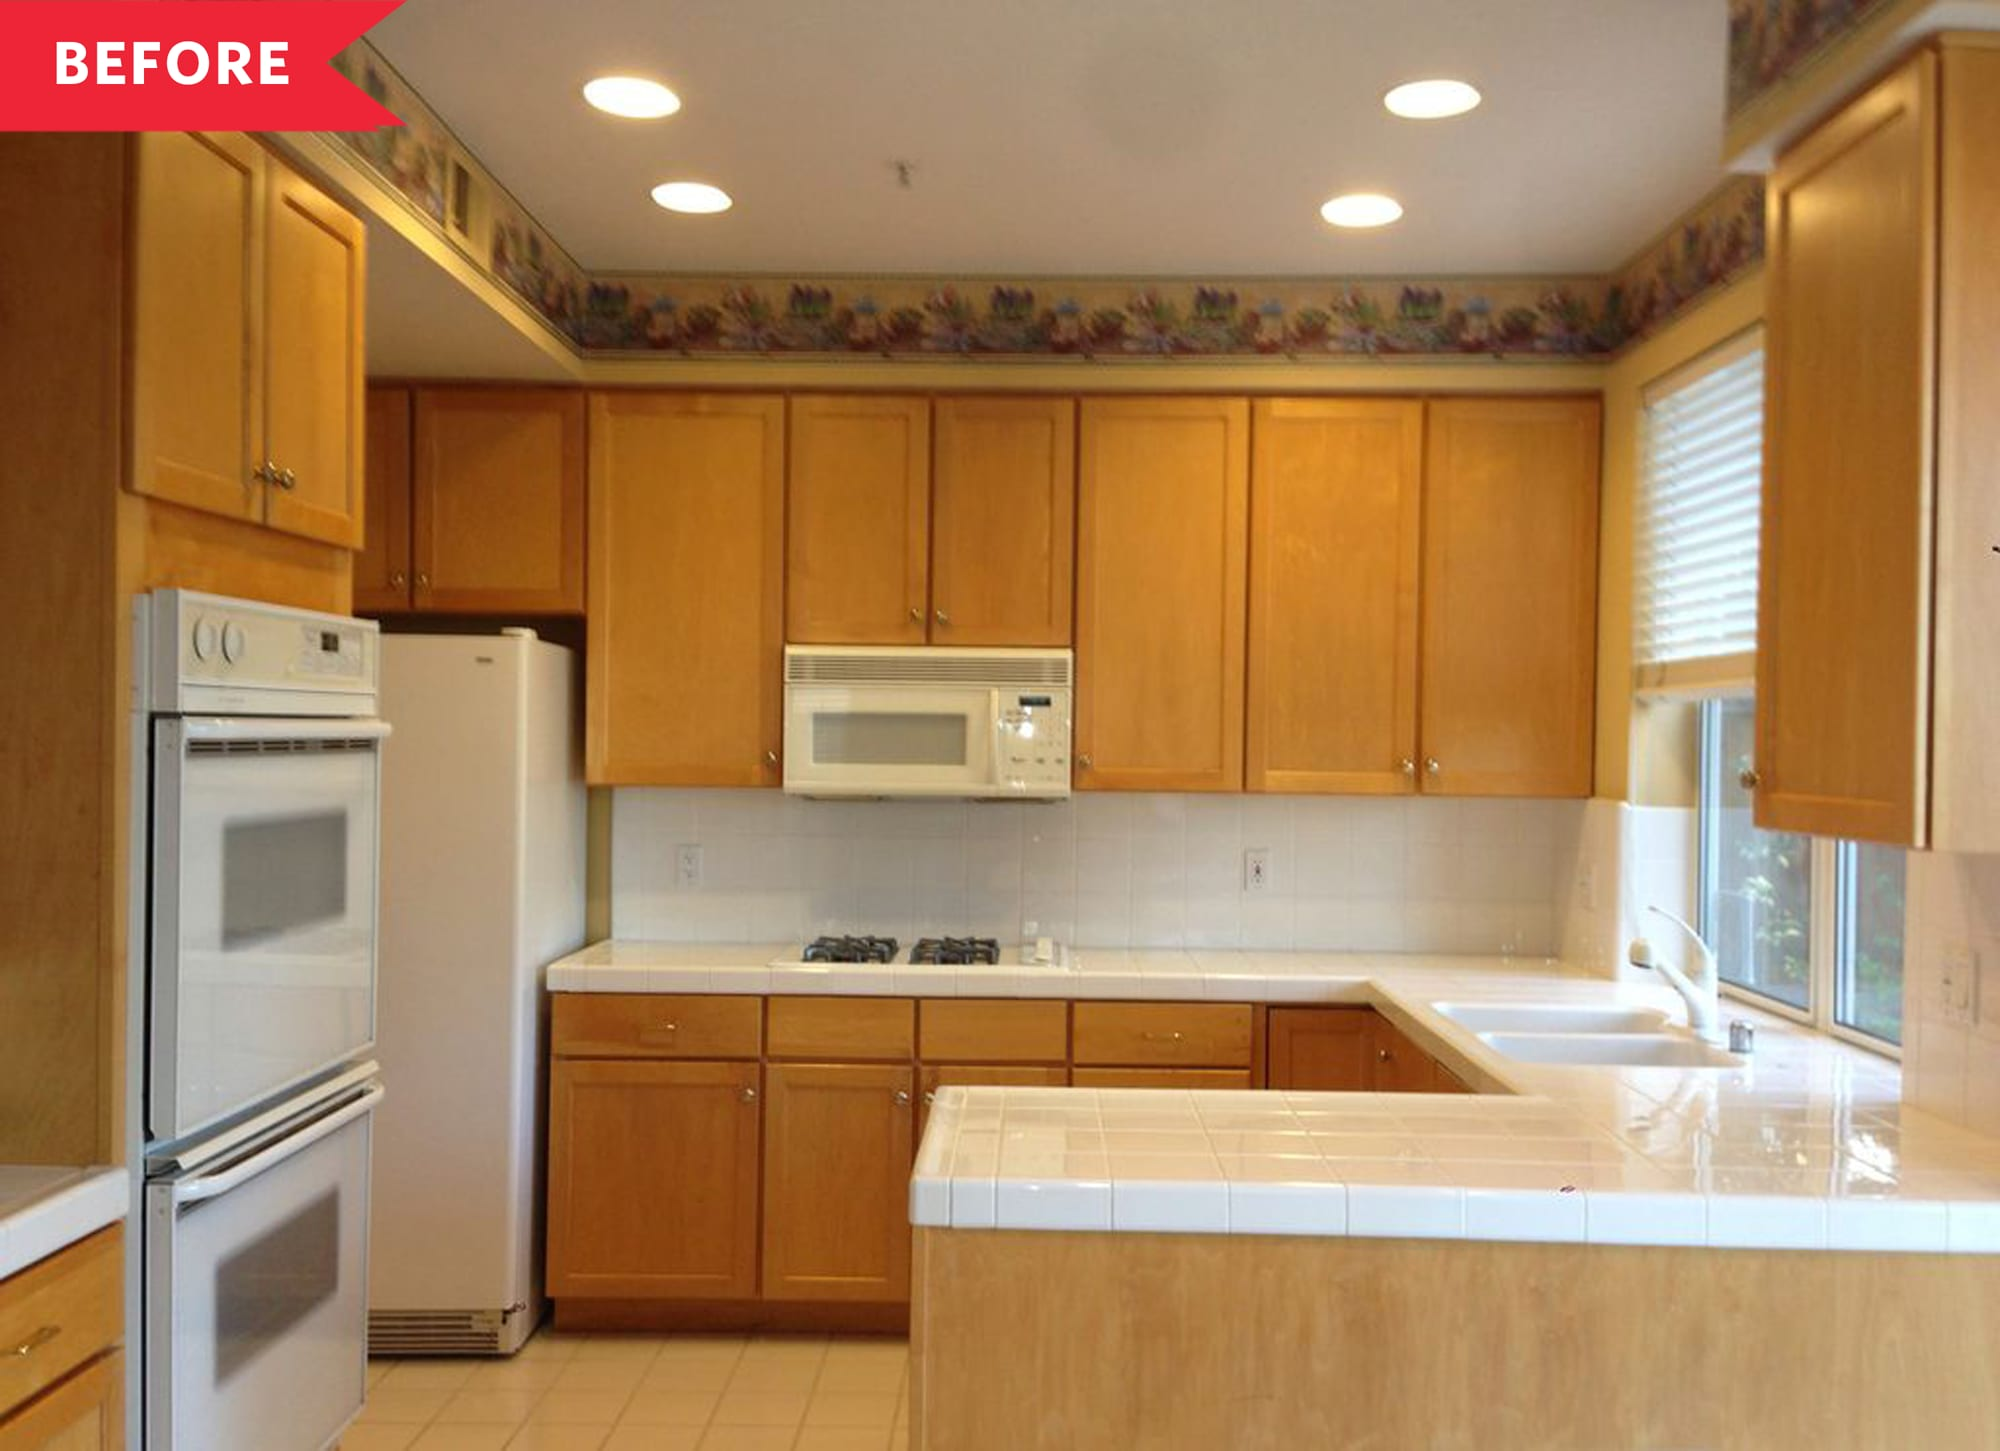 1980s House Complete Remodel Before and After | Apartment ... on tile for a home, ideas for a home, art for a home,